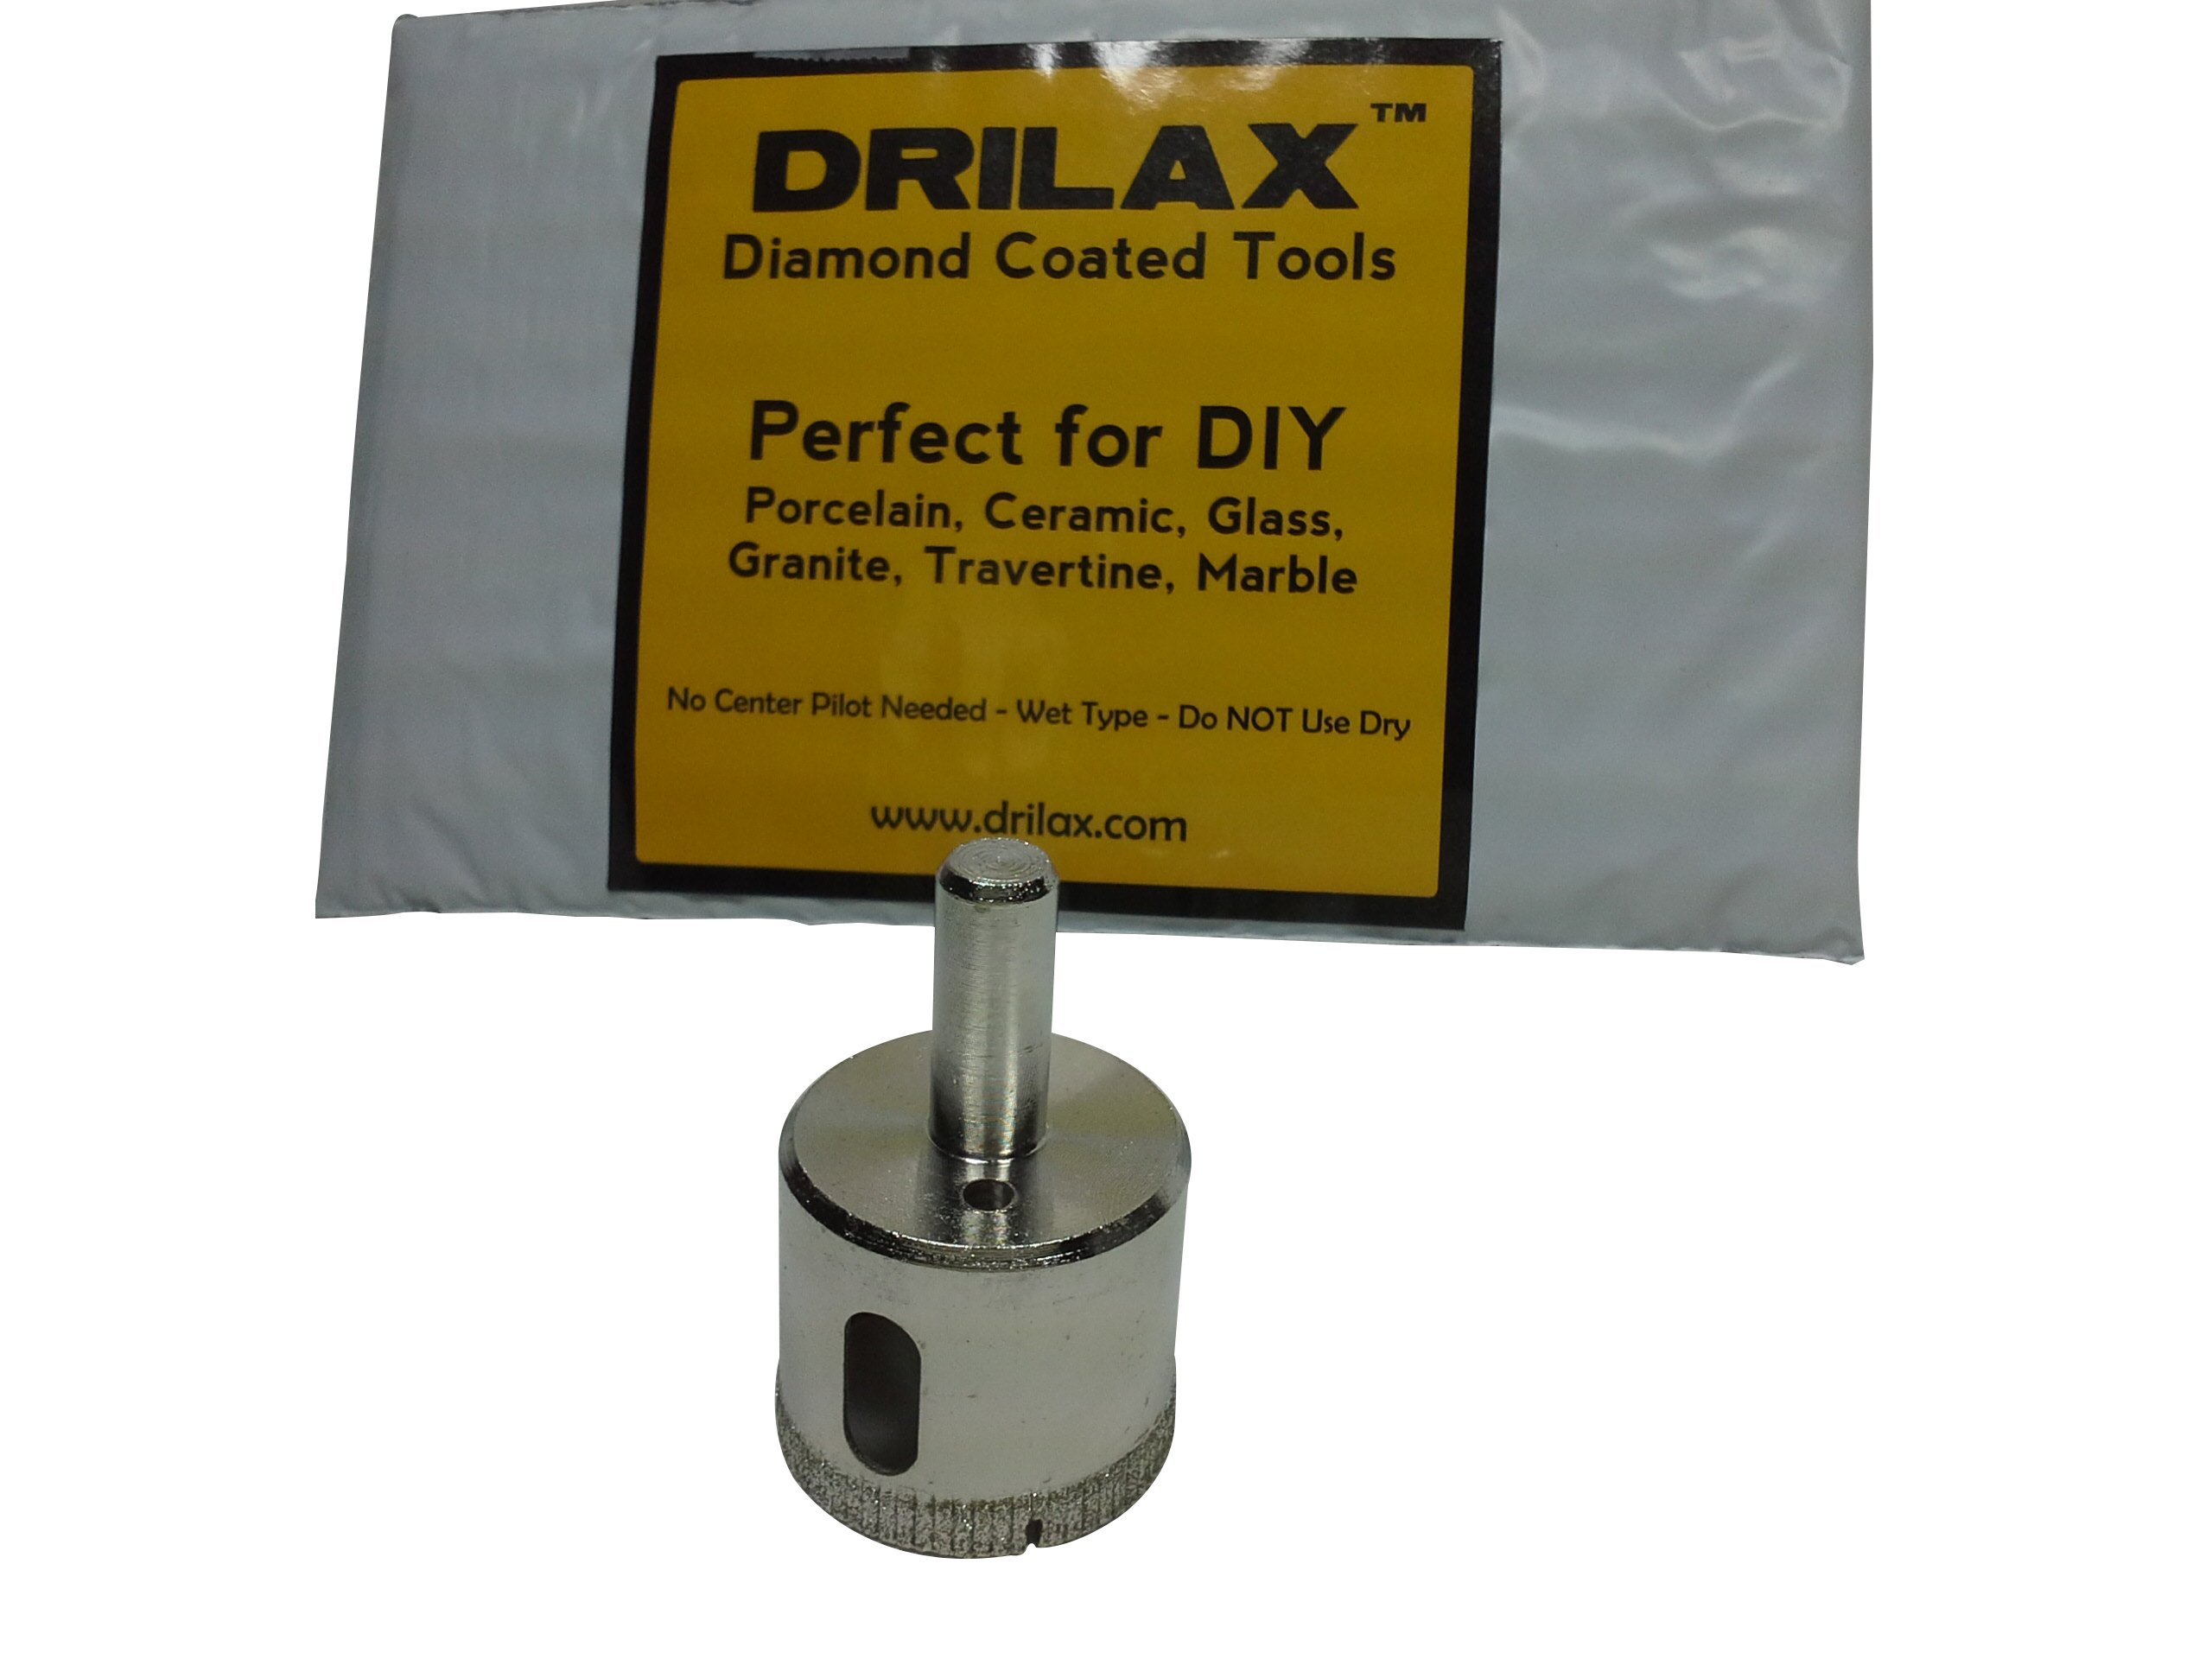 """Drilax 1 1/2 Inch Diamond Hole Saw Drill Bit Tiles, Glass, Fish Tanks, Marble, Granite Countertop, Ceramic, Porcelain, Coated Core Bits Holesaw DIY Kitchen, Bathroom, Shower, Faucet Installation Size 1-1/2"""" Inches"""